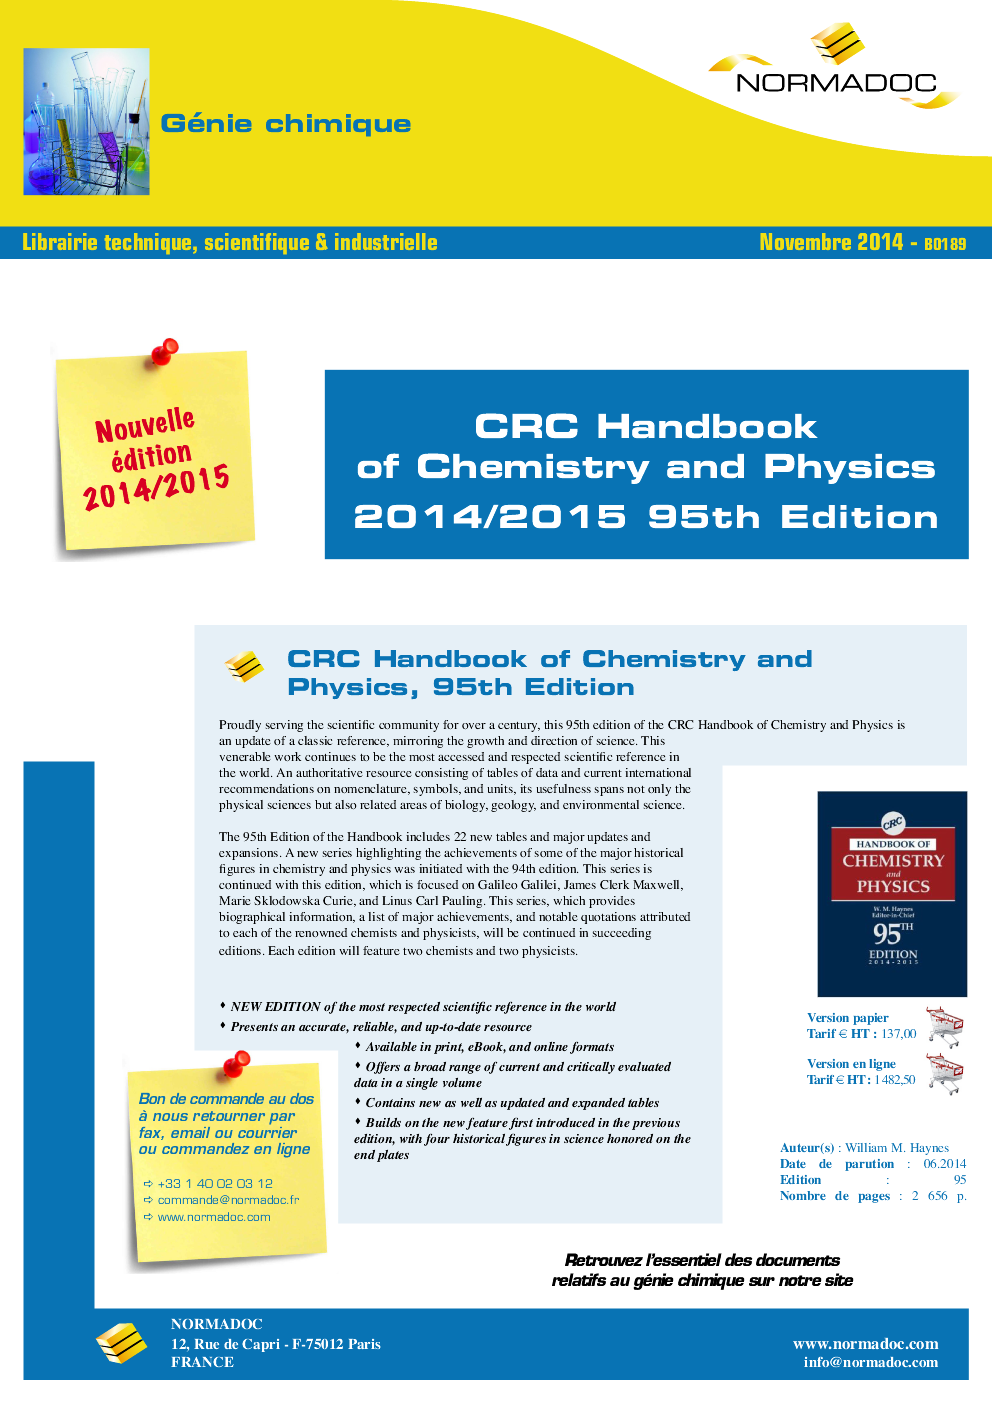 CRC Handbook of Chemistry and Physics, 95th Edition